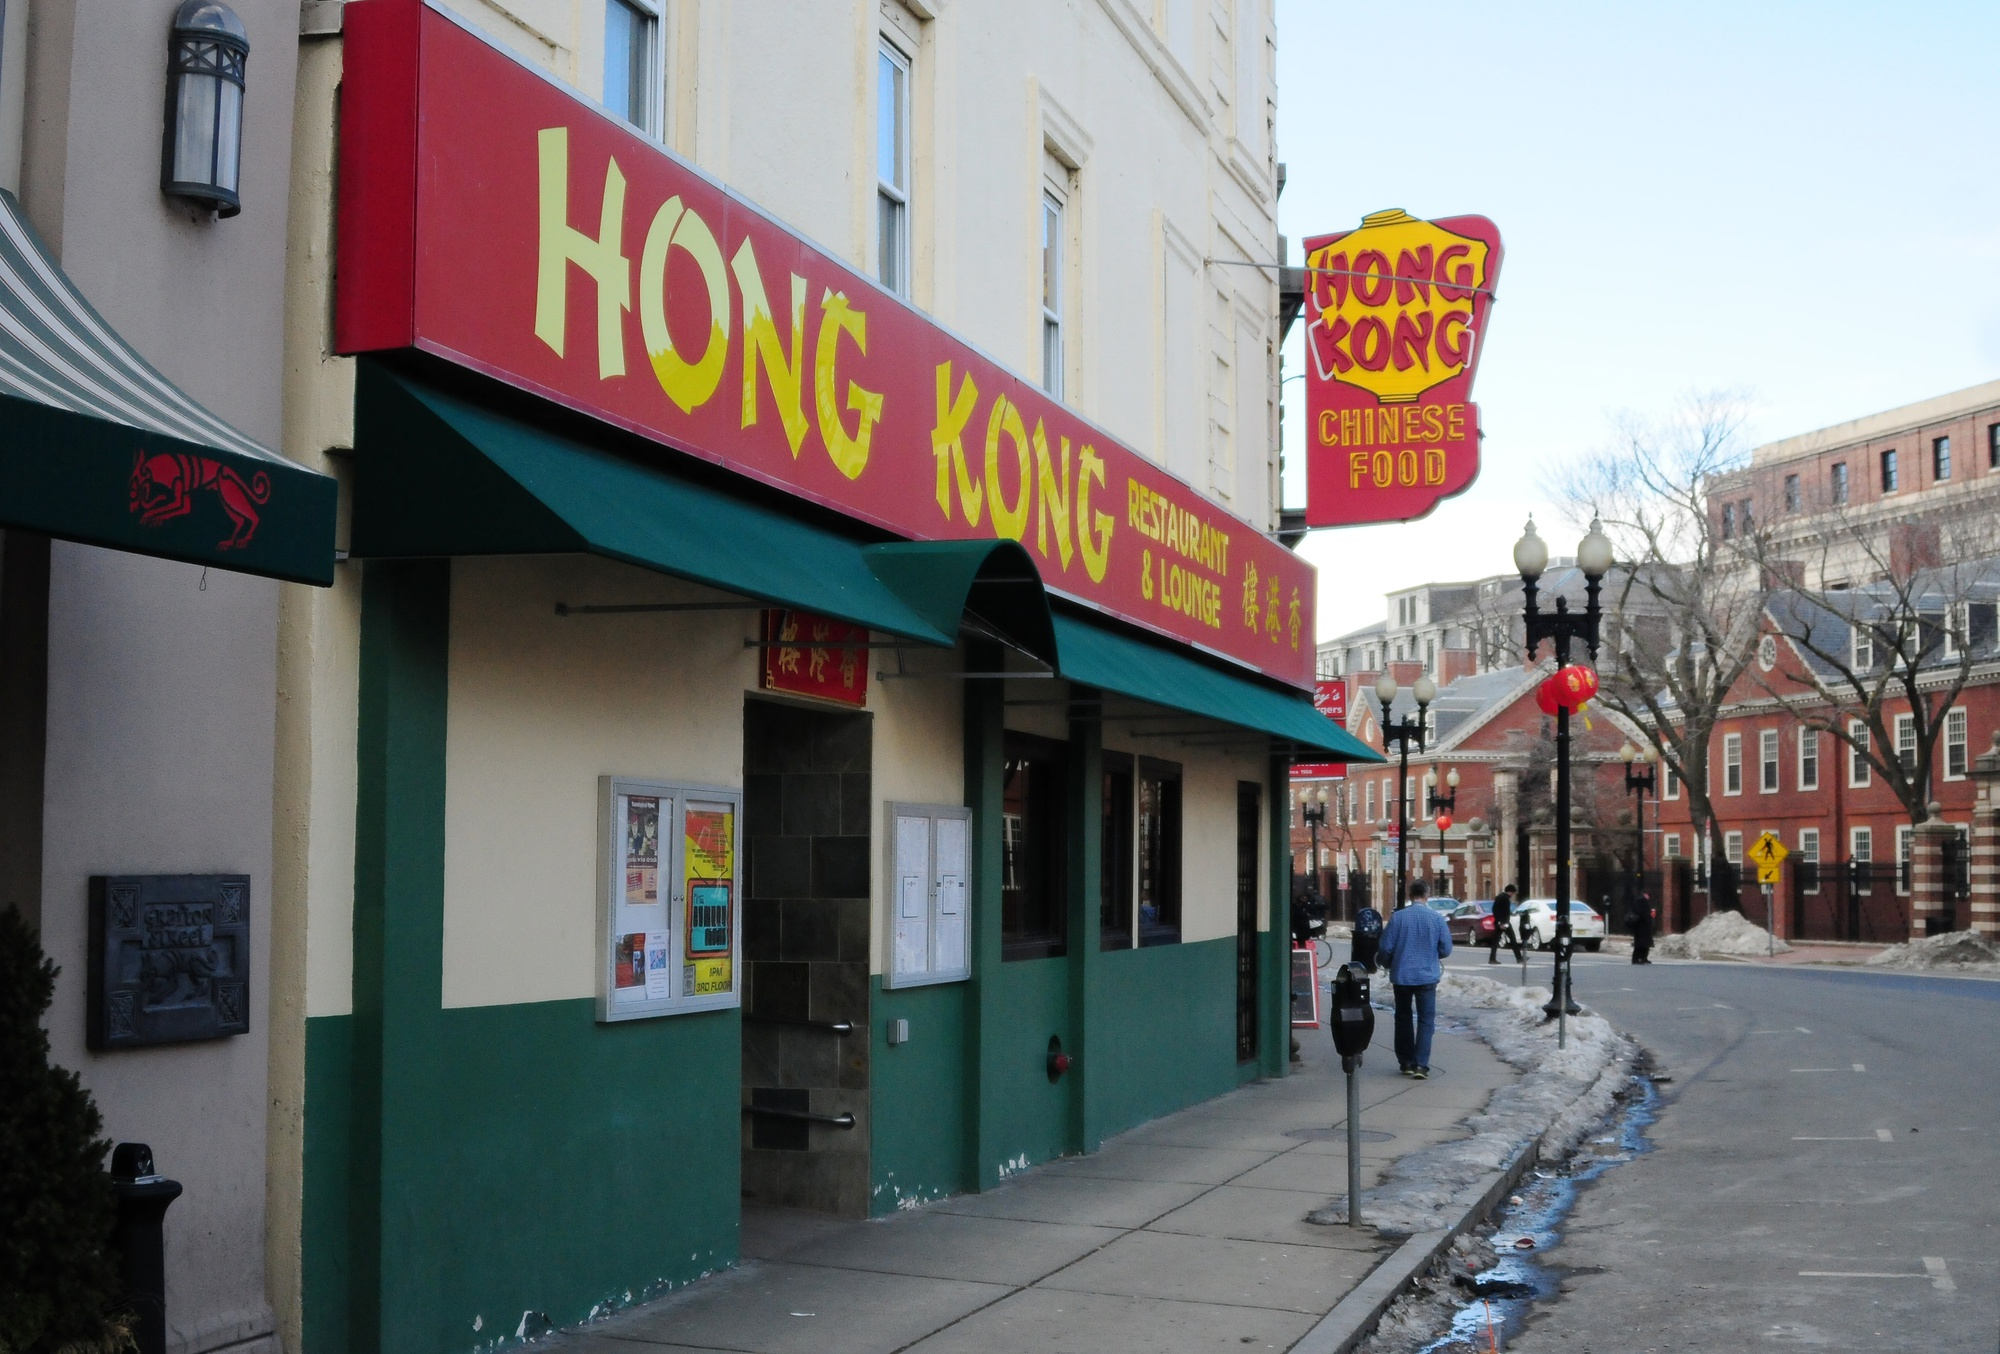 Hong Kong restaurant sits on Massachusetts Avenue in Harvard Square. This year, the Harvard student destination celebrates its 60th anniversary.